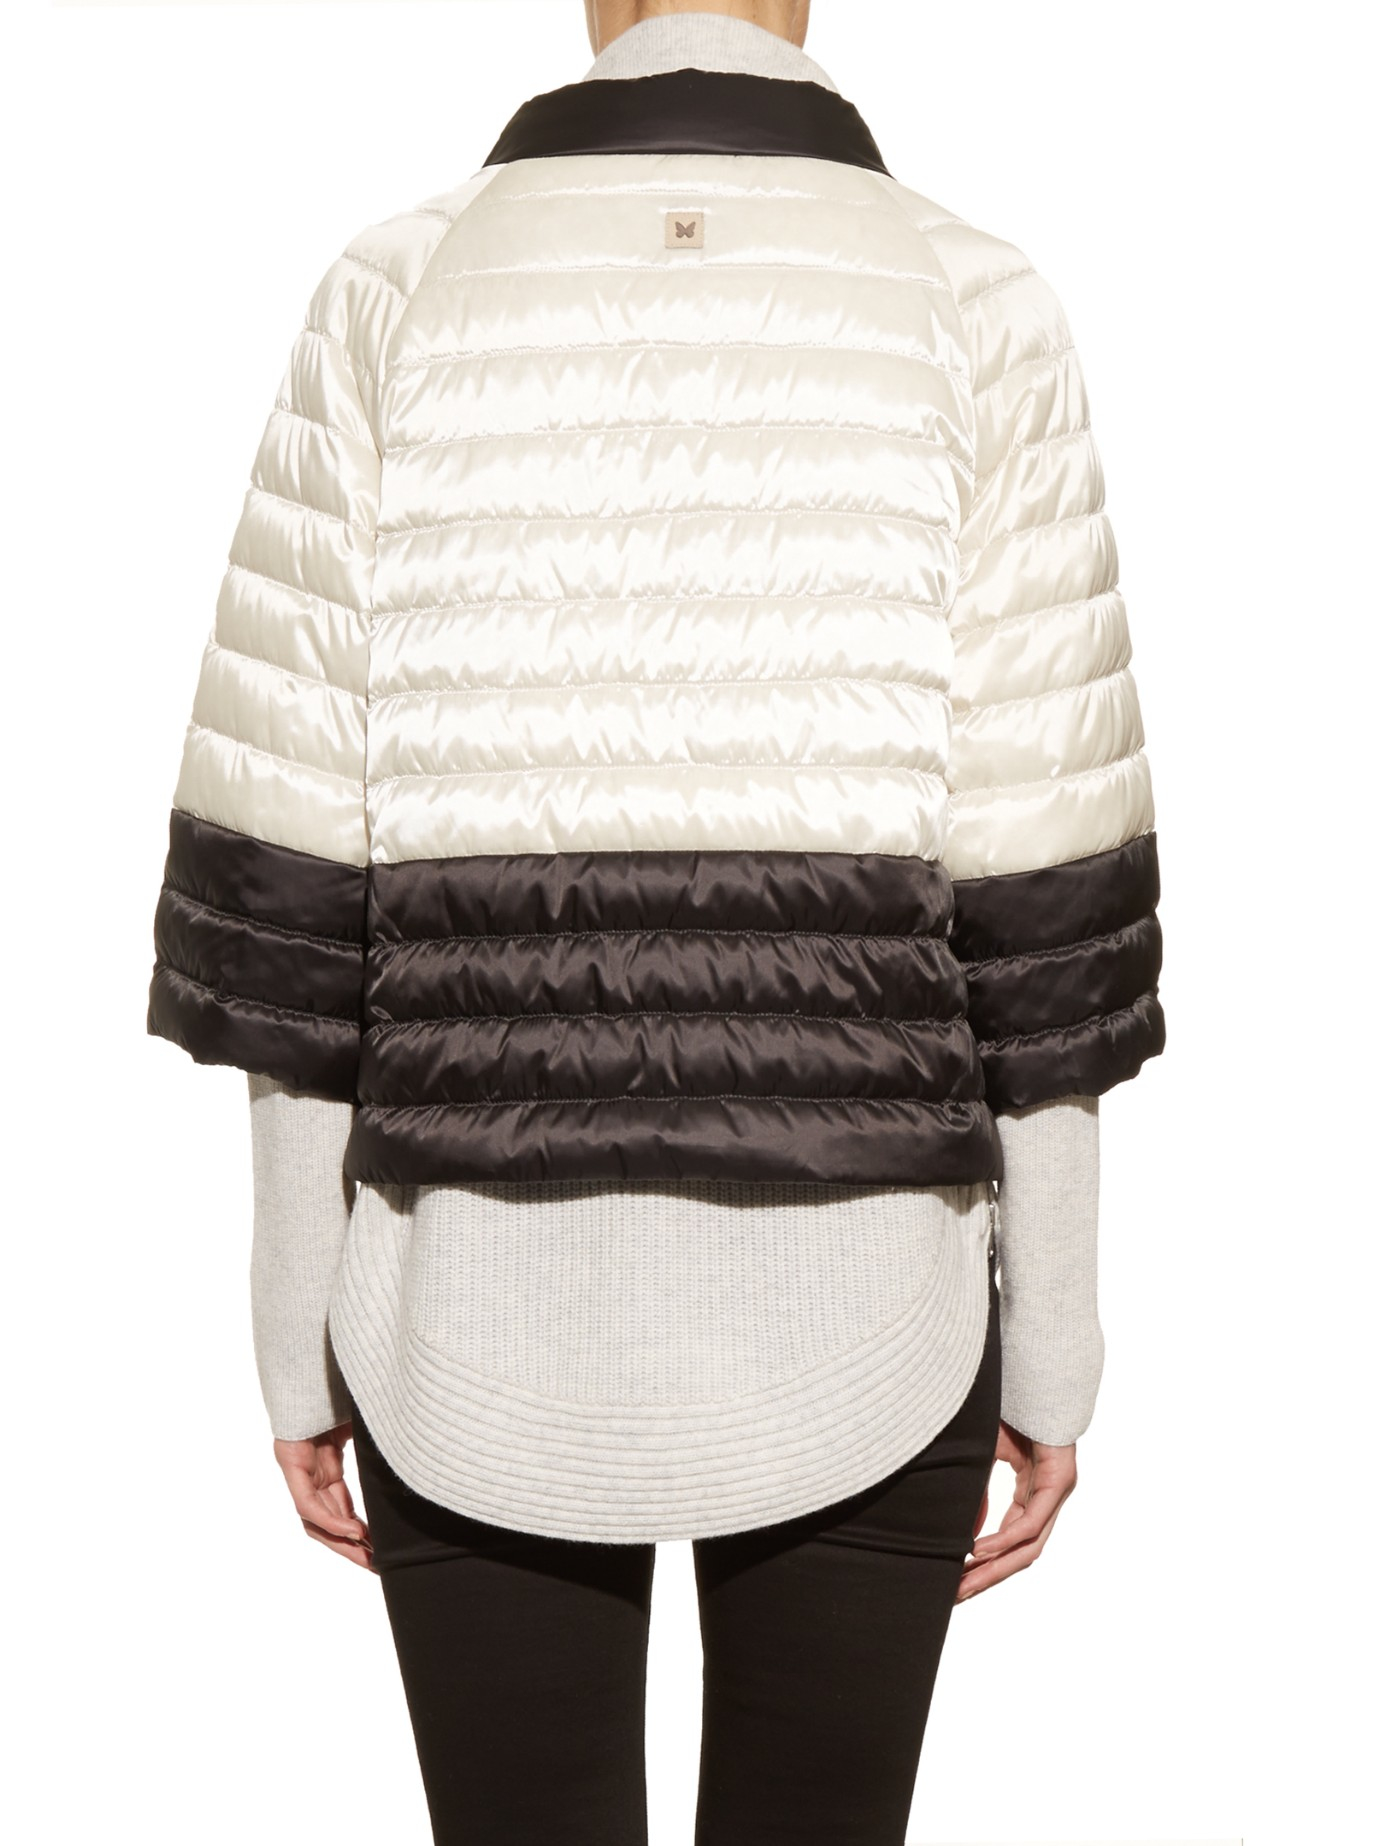 Lyst - Weekend by maxmara Lisotte Quilted Jacket in White : max mara quilted jacket - Adamdwight.com